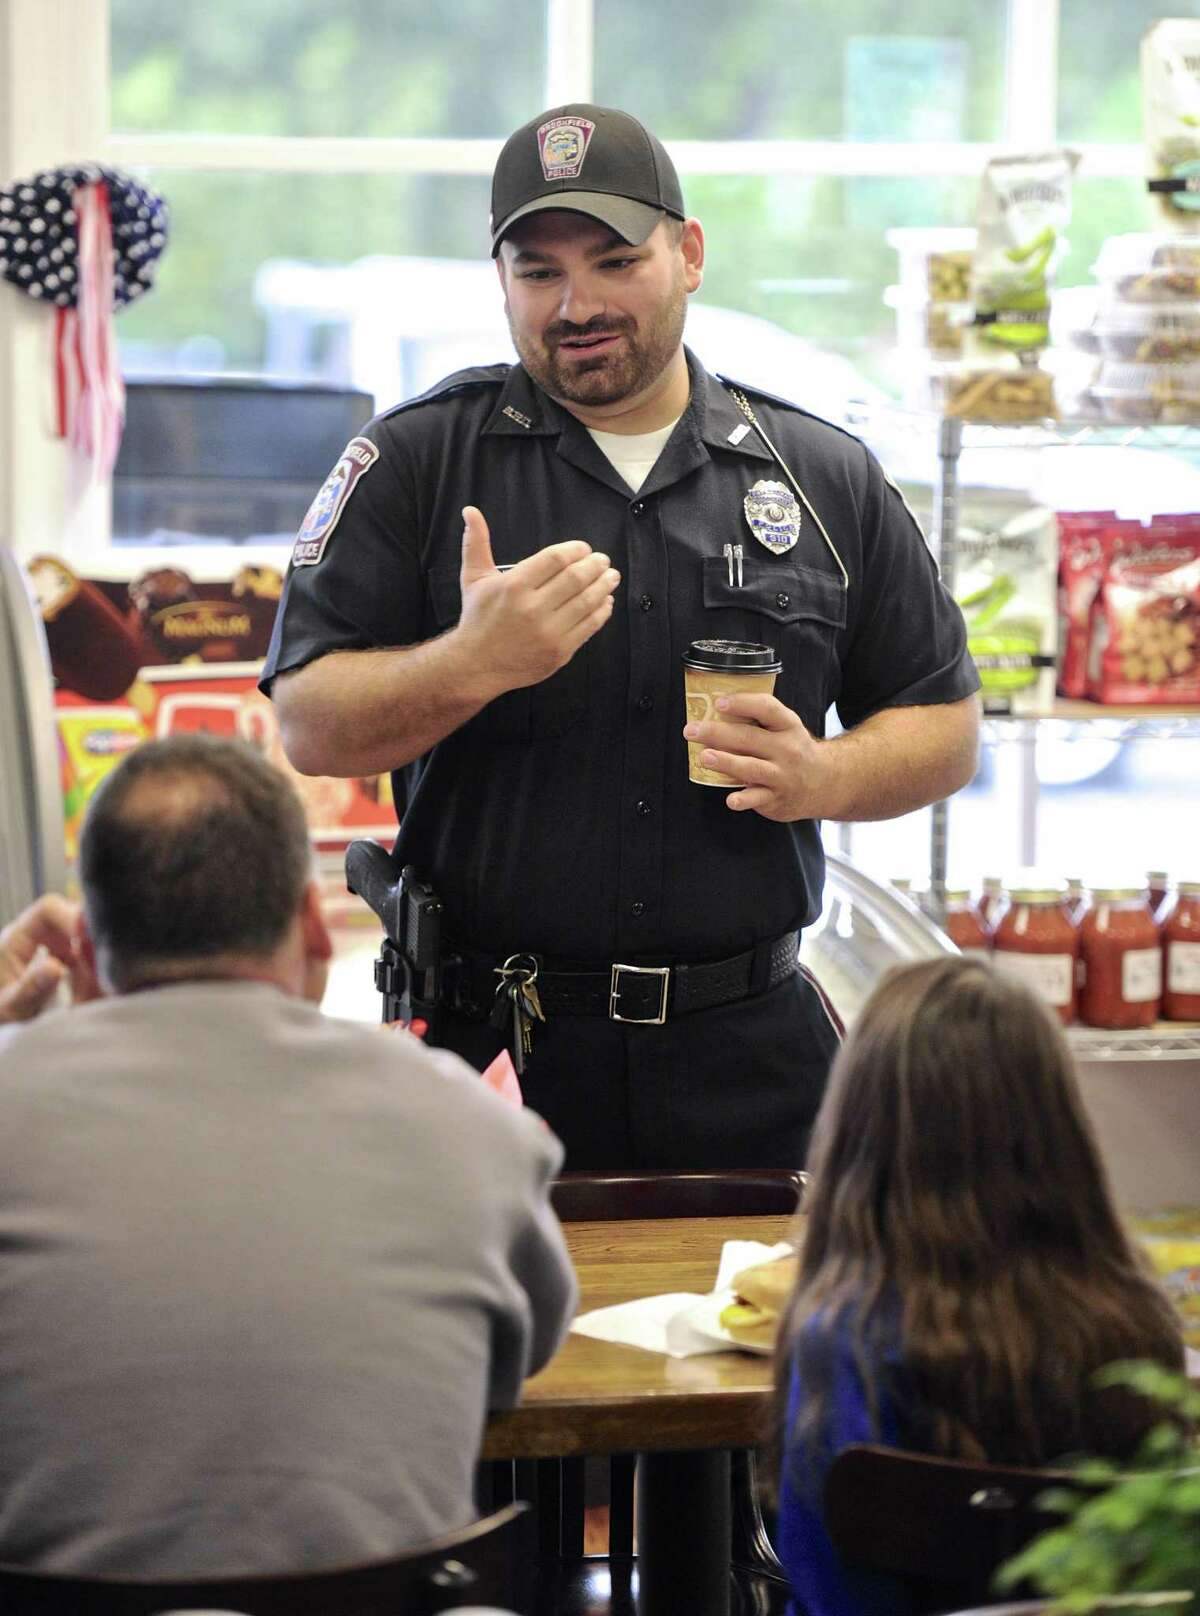 Officer Joe Kyek talks with customers of Brookfield Deli and Catering. Members of the Brookfield Police Department were at the deli for breakfast, and to have a chance to meet and talk with residents. Saturday, October 8, 2016, in Brookfield, Conn.